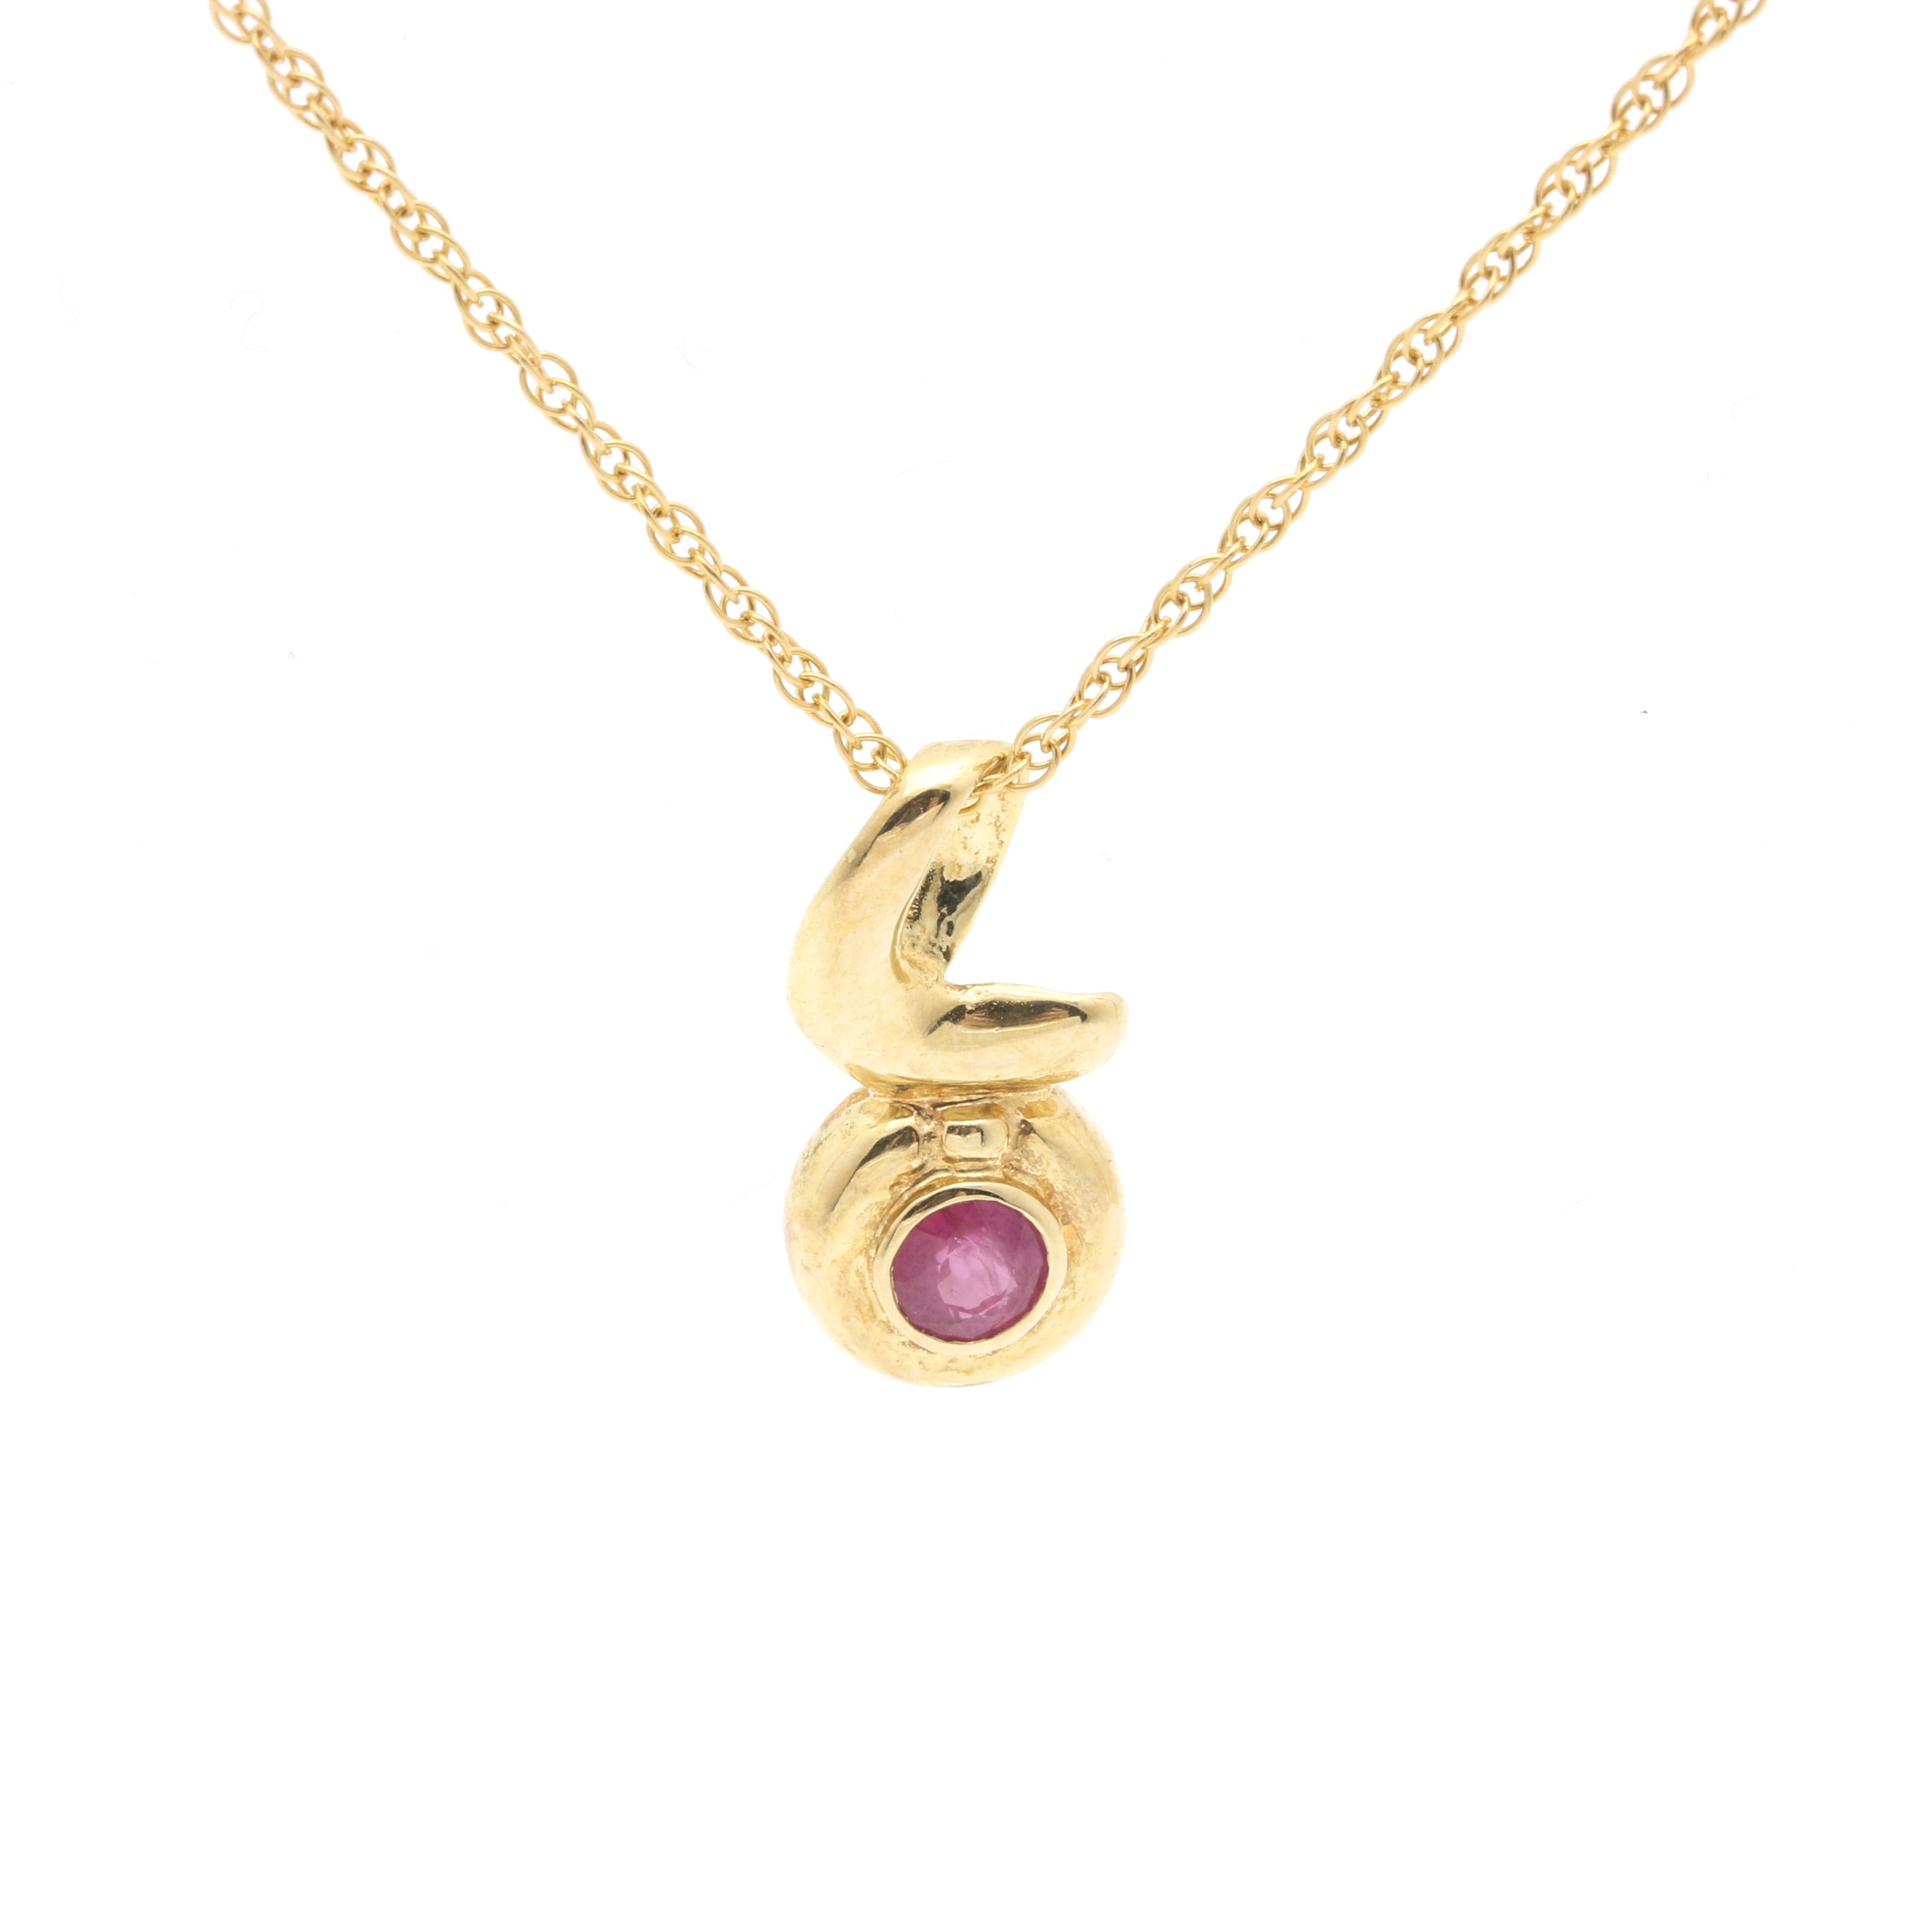 14K Yellow Gold Ruby Pendant Necklace